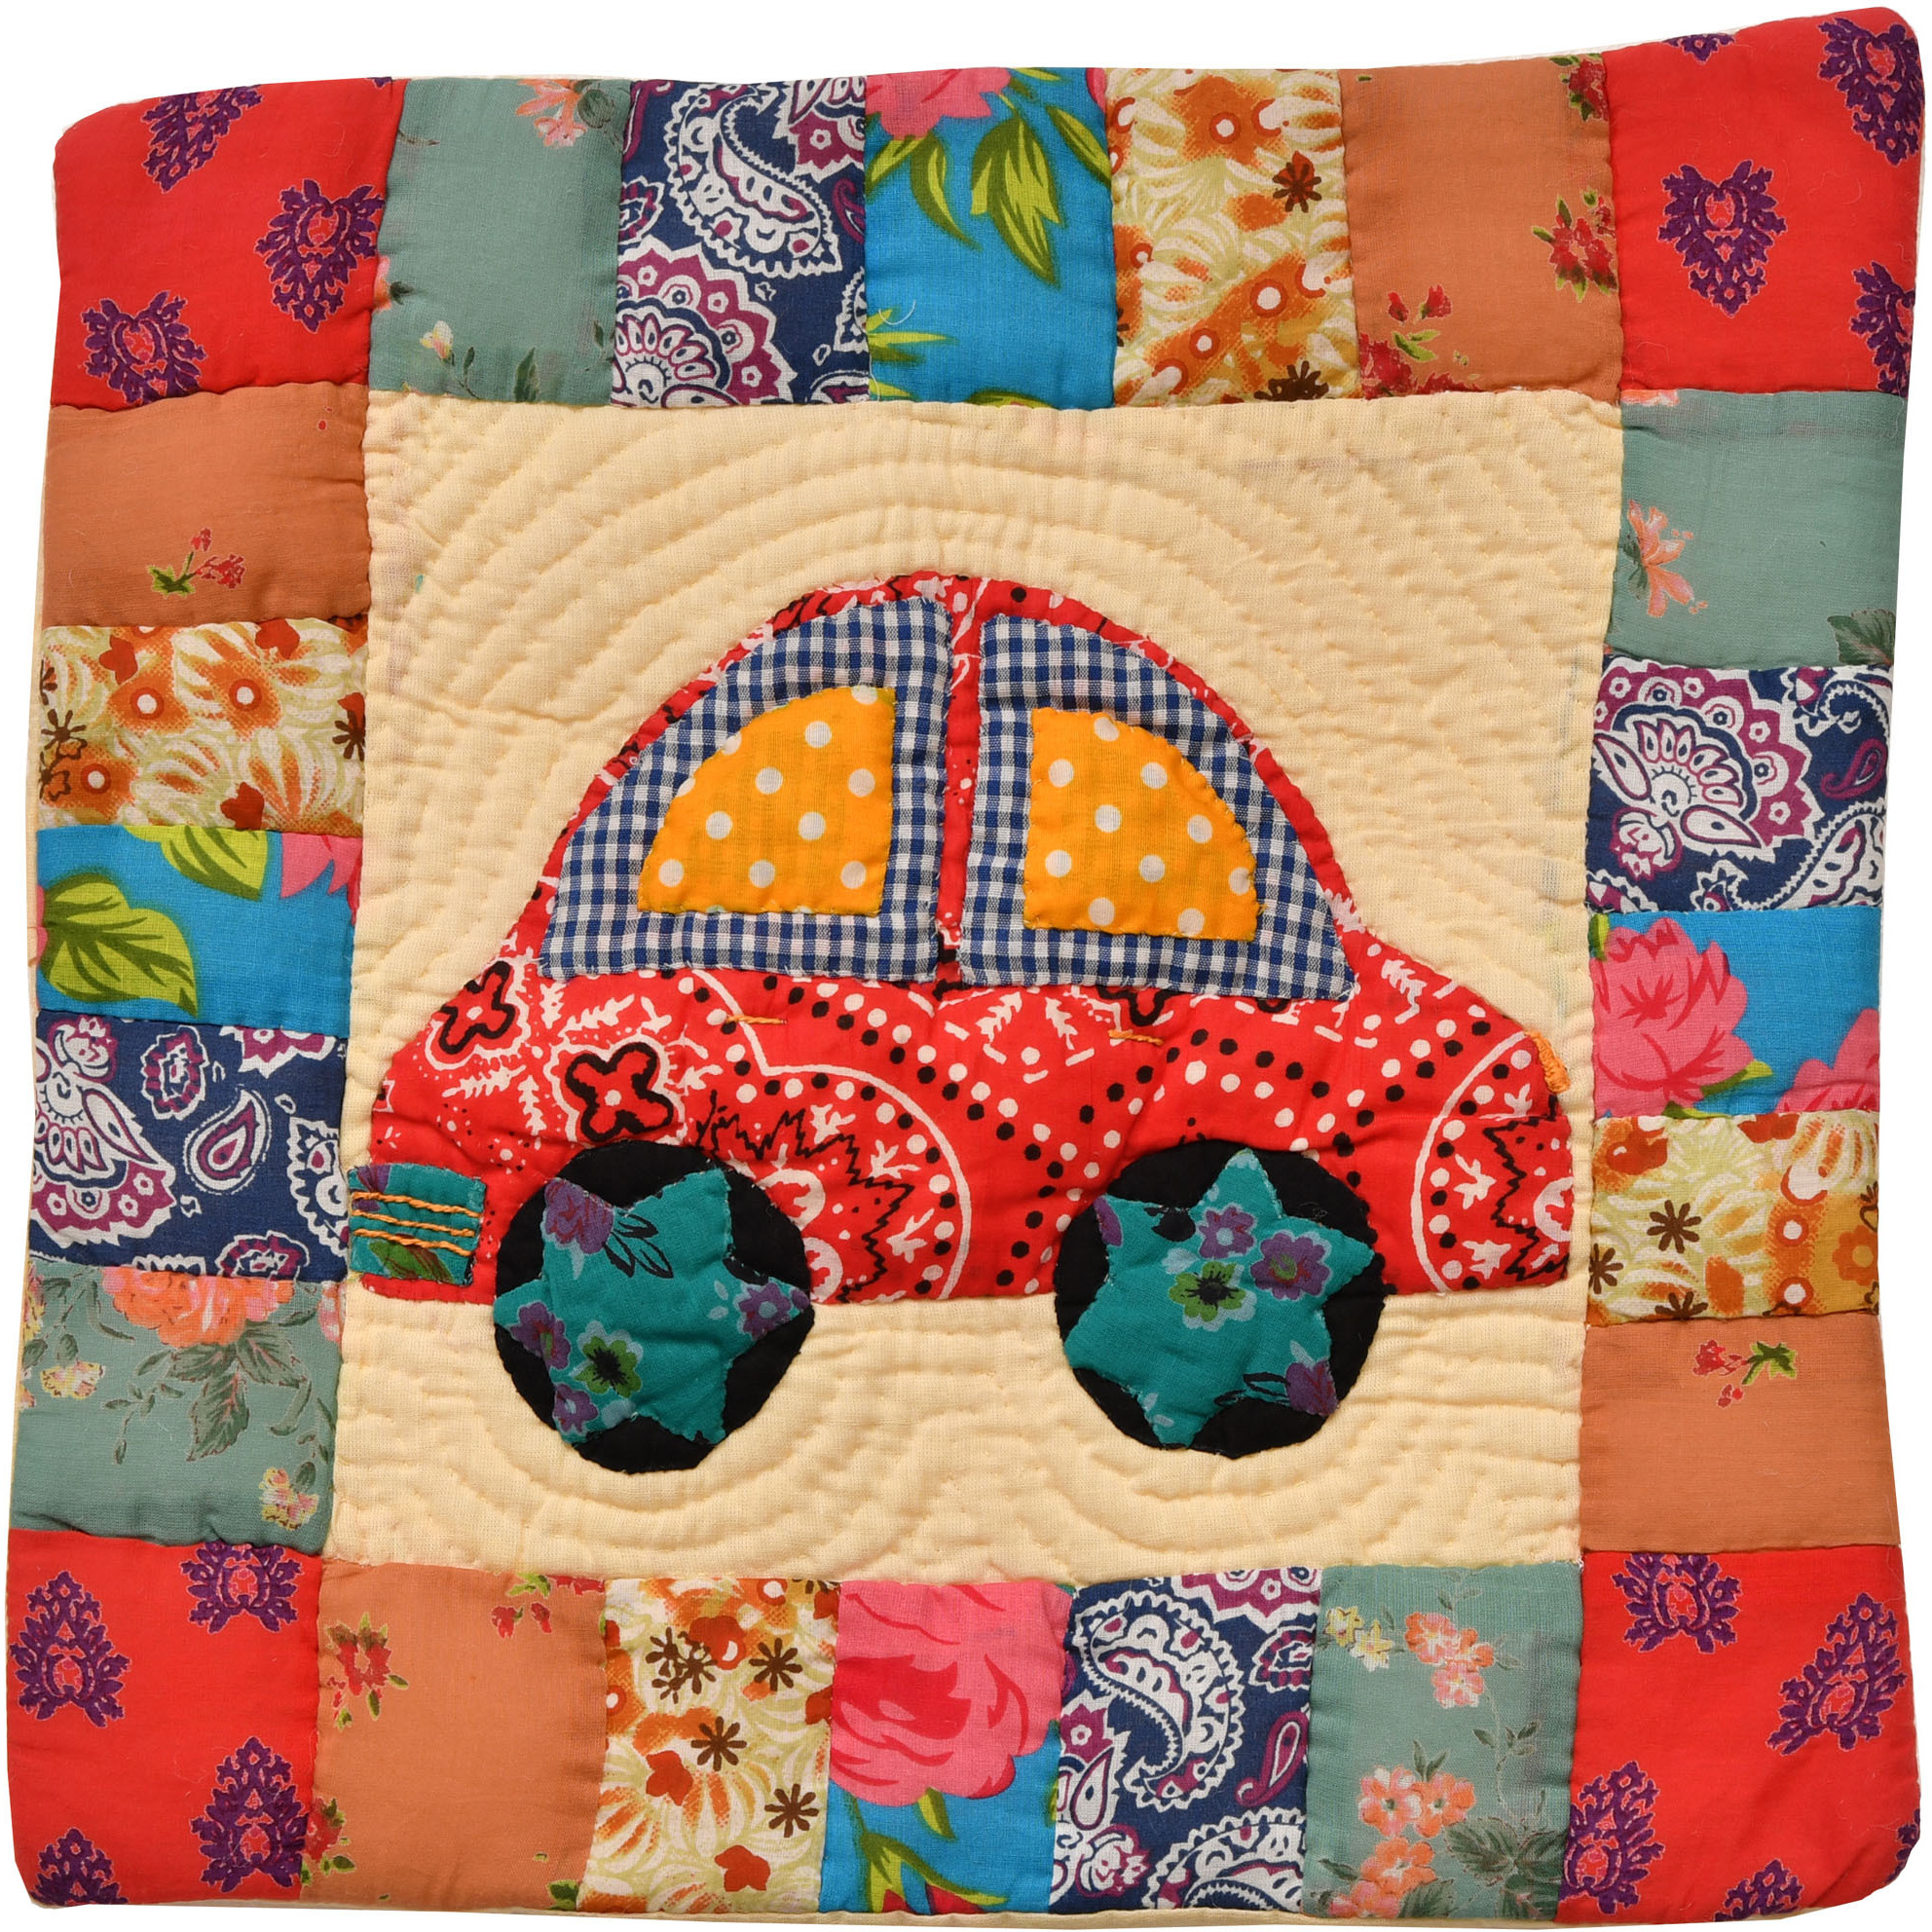 Multicolor Printed Patchwork Cushion Cover from Dehradun with Applique Car